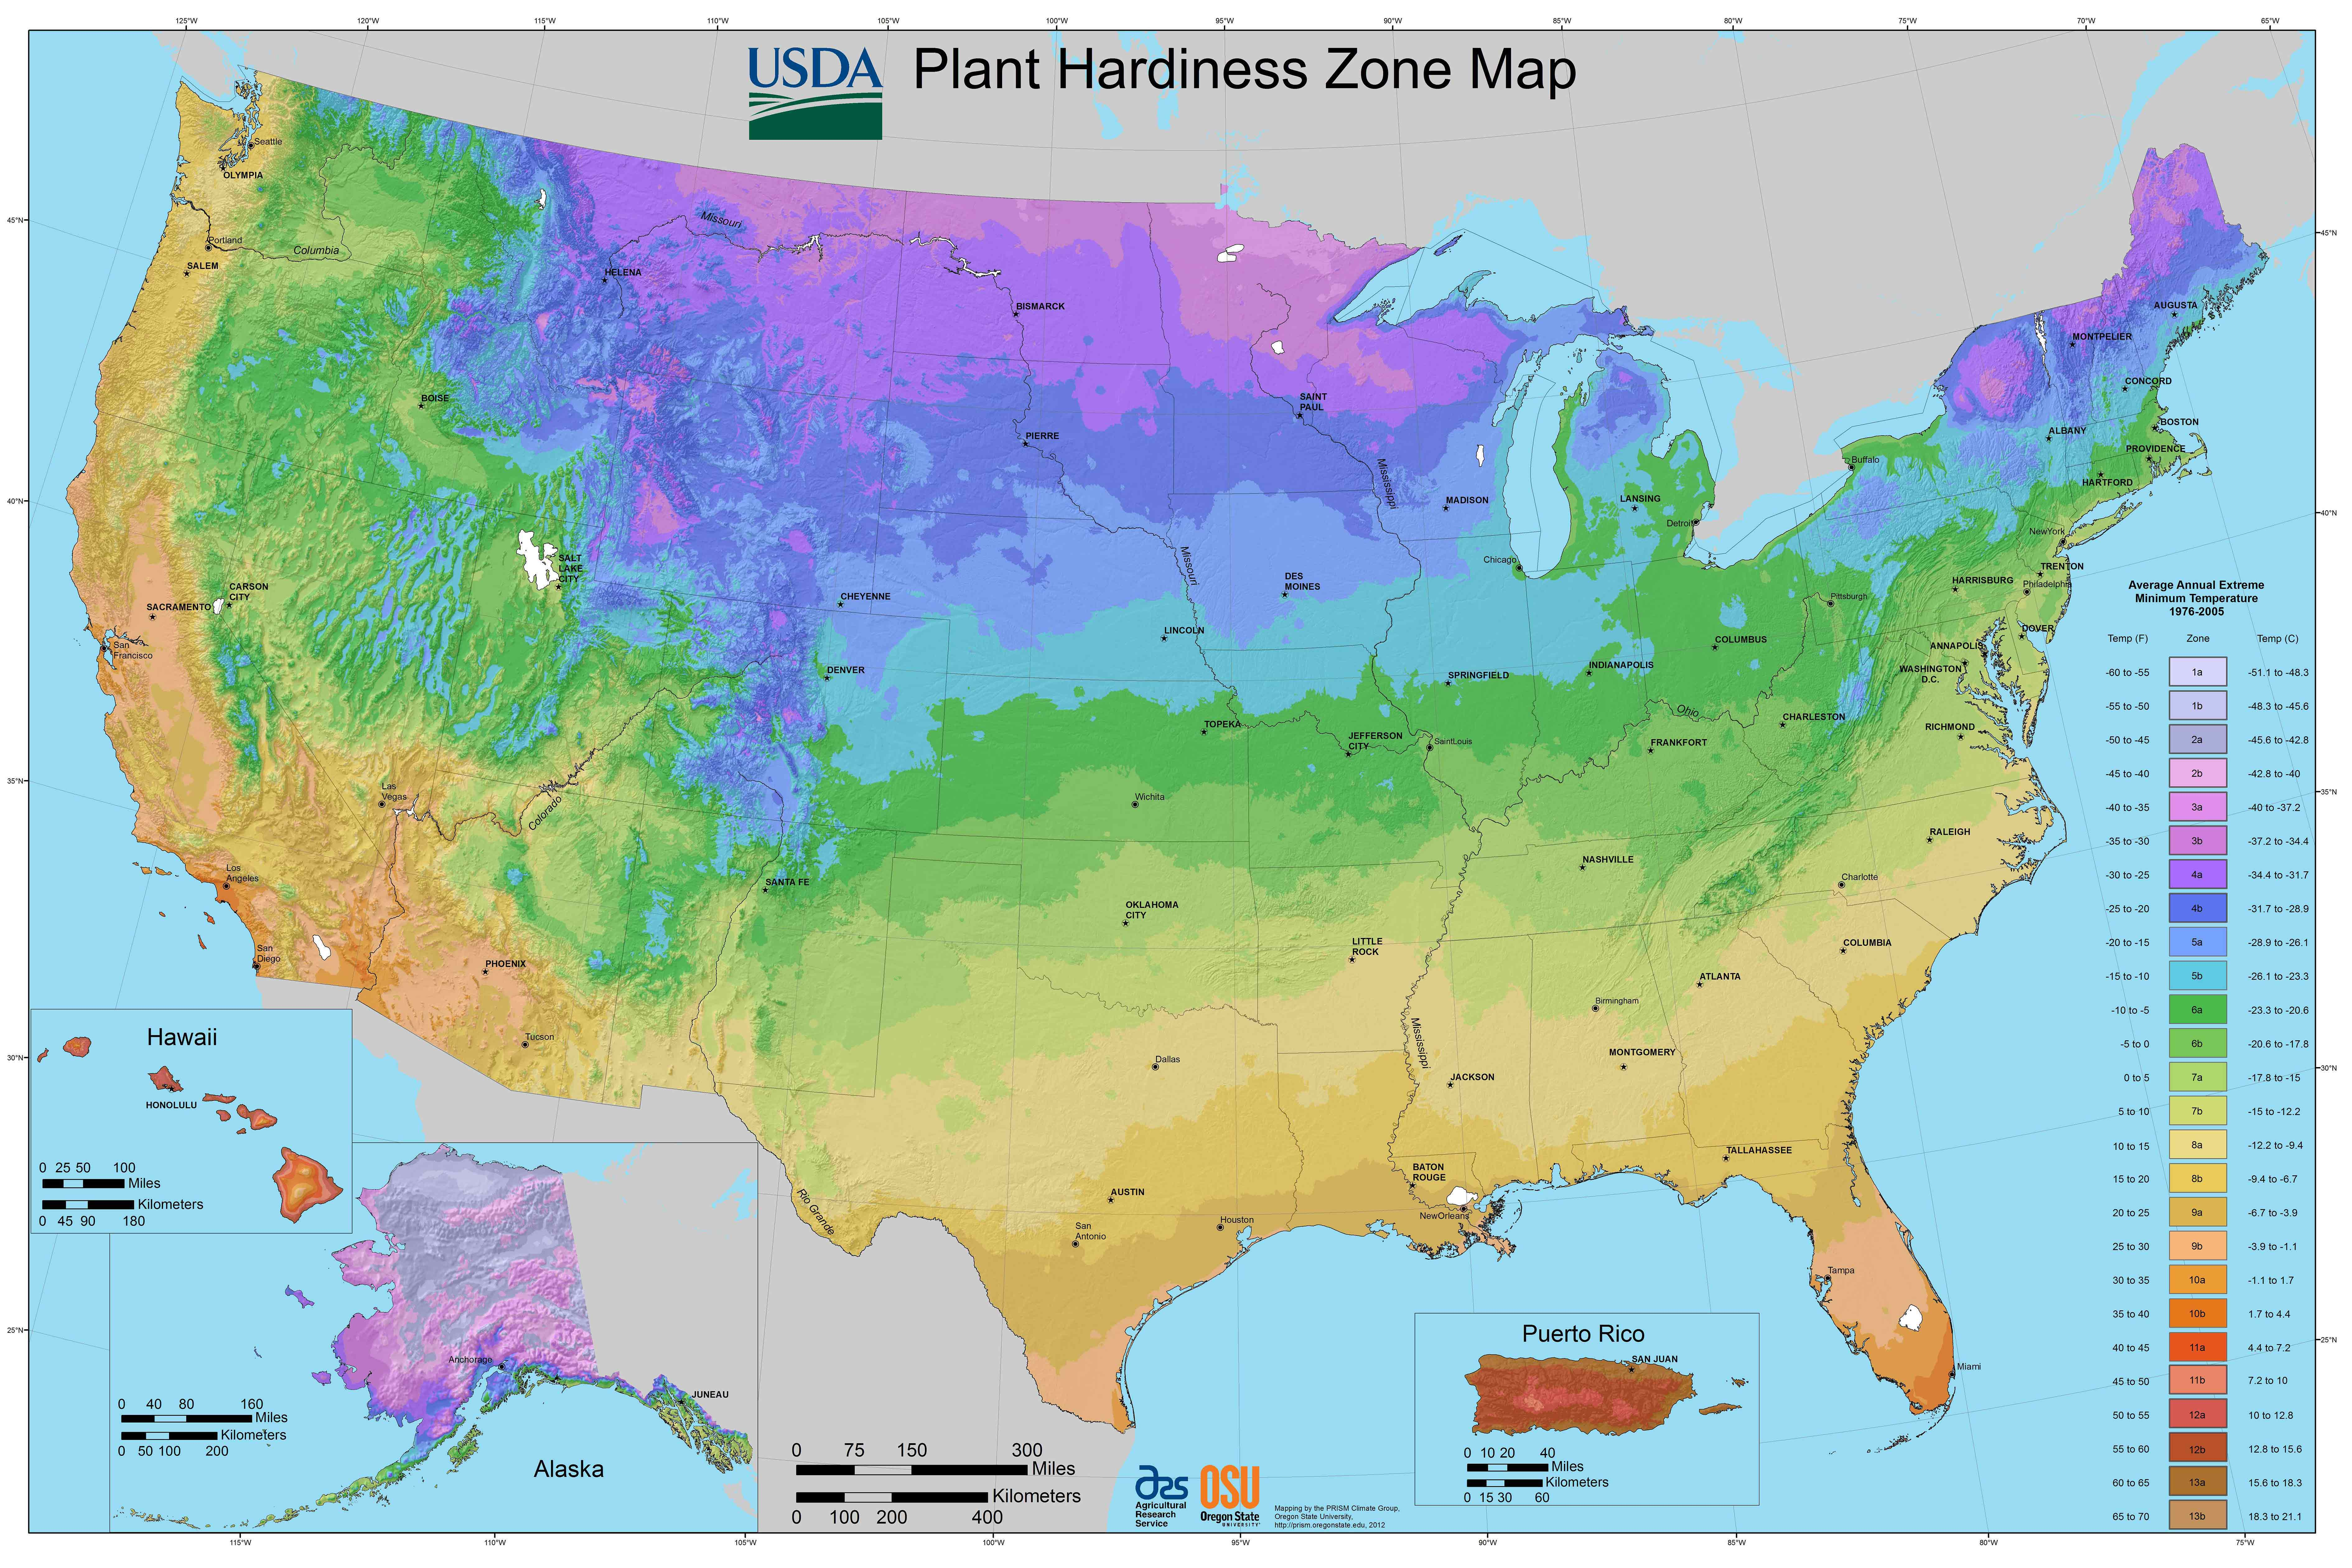 A plant hardiness map of the USA